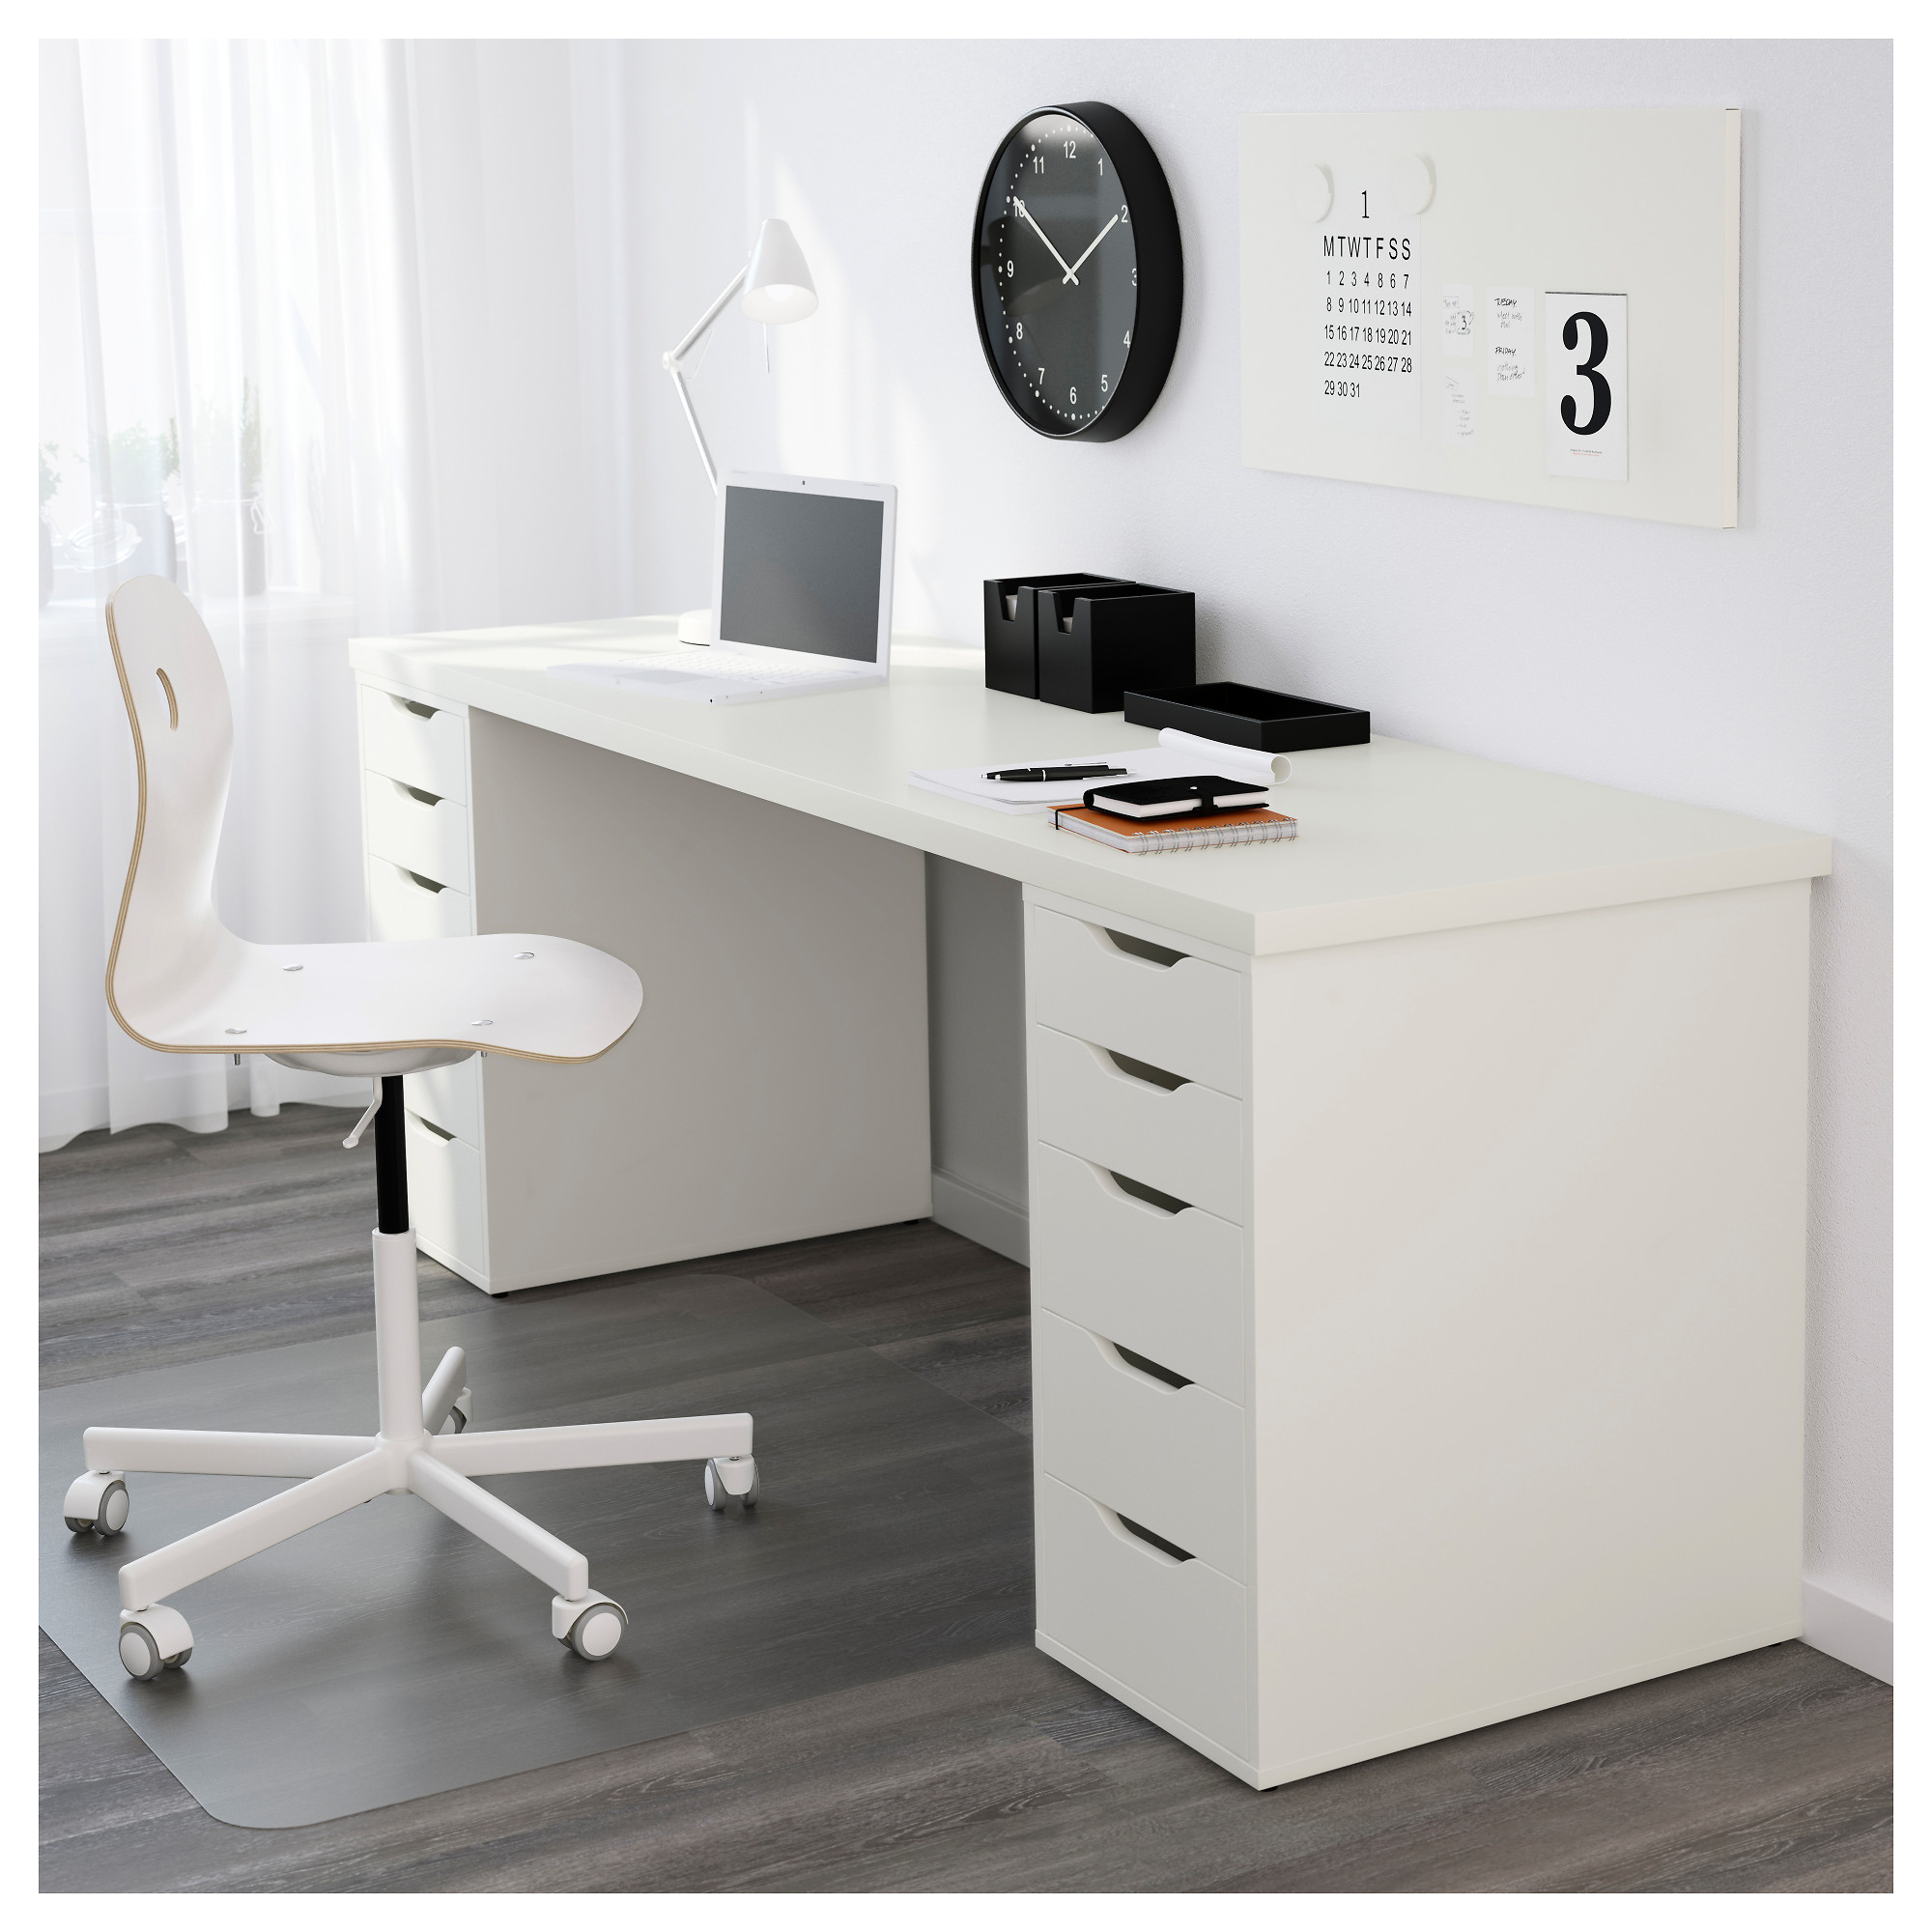 LINNMON Table Top   White   IKEA